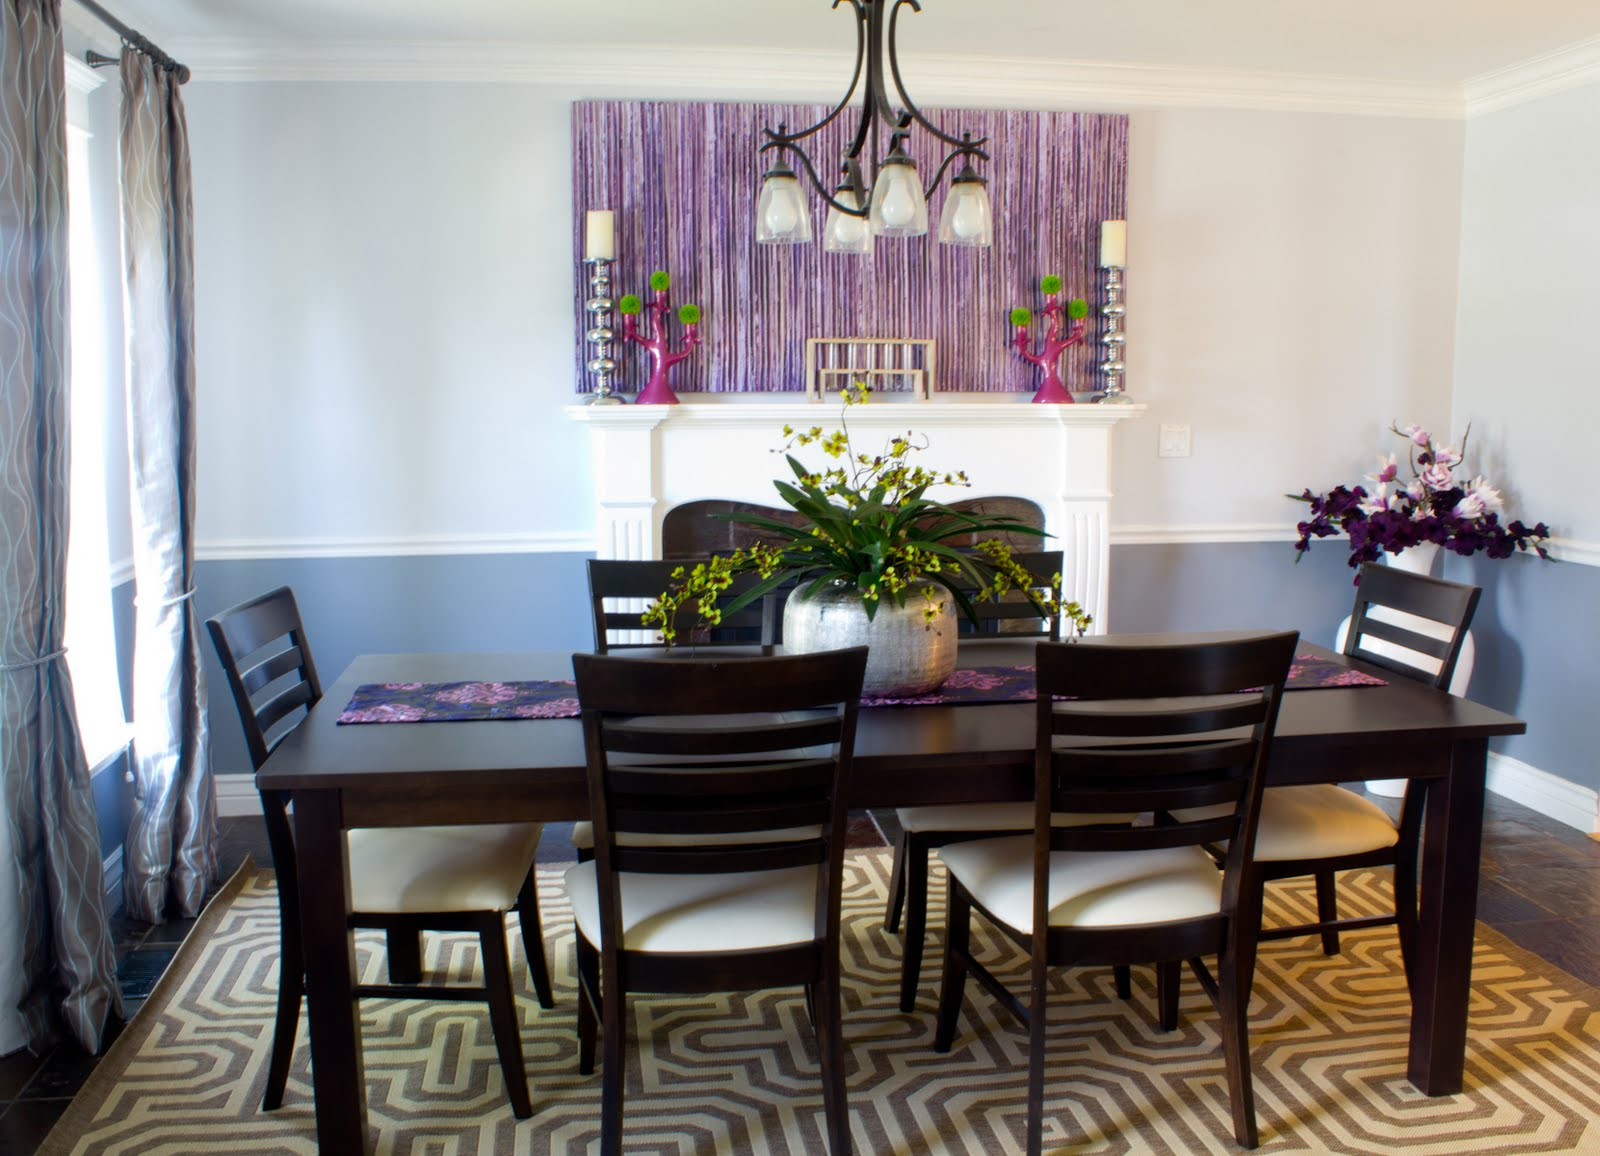 dining room seat cushions in natural design together with dark finishing and attractive patterned rug plus